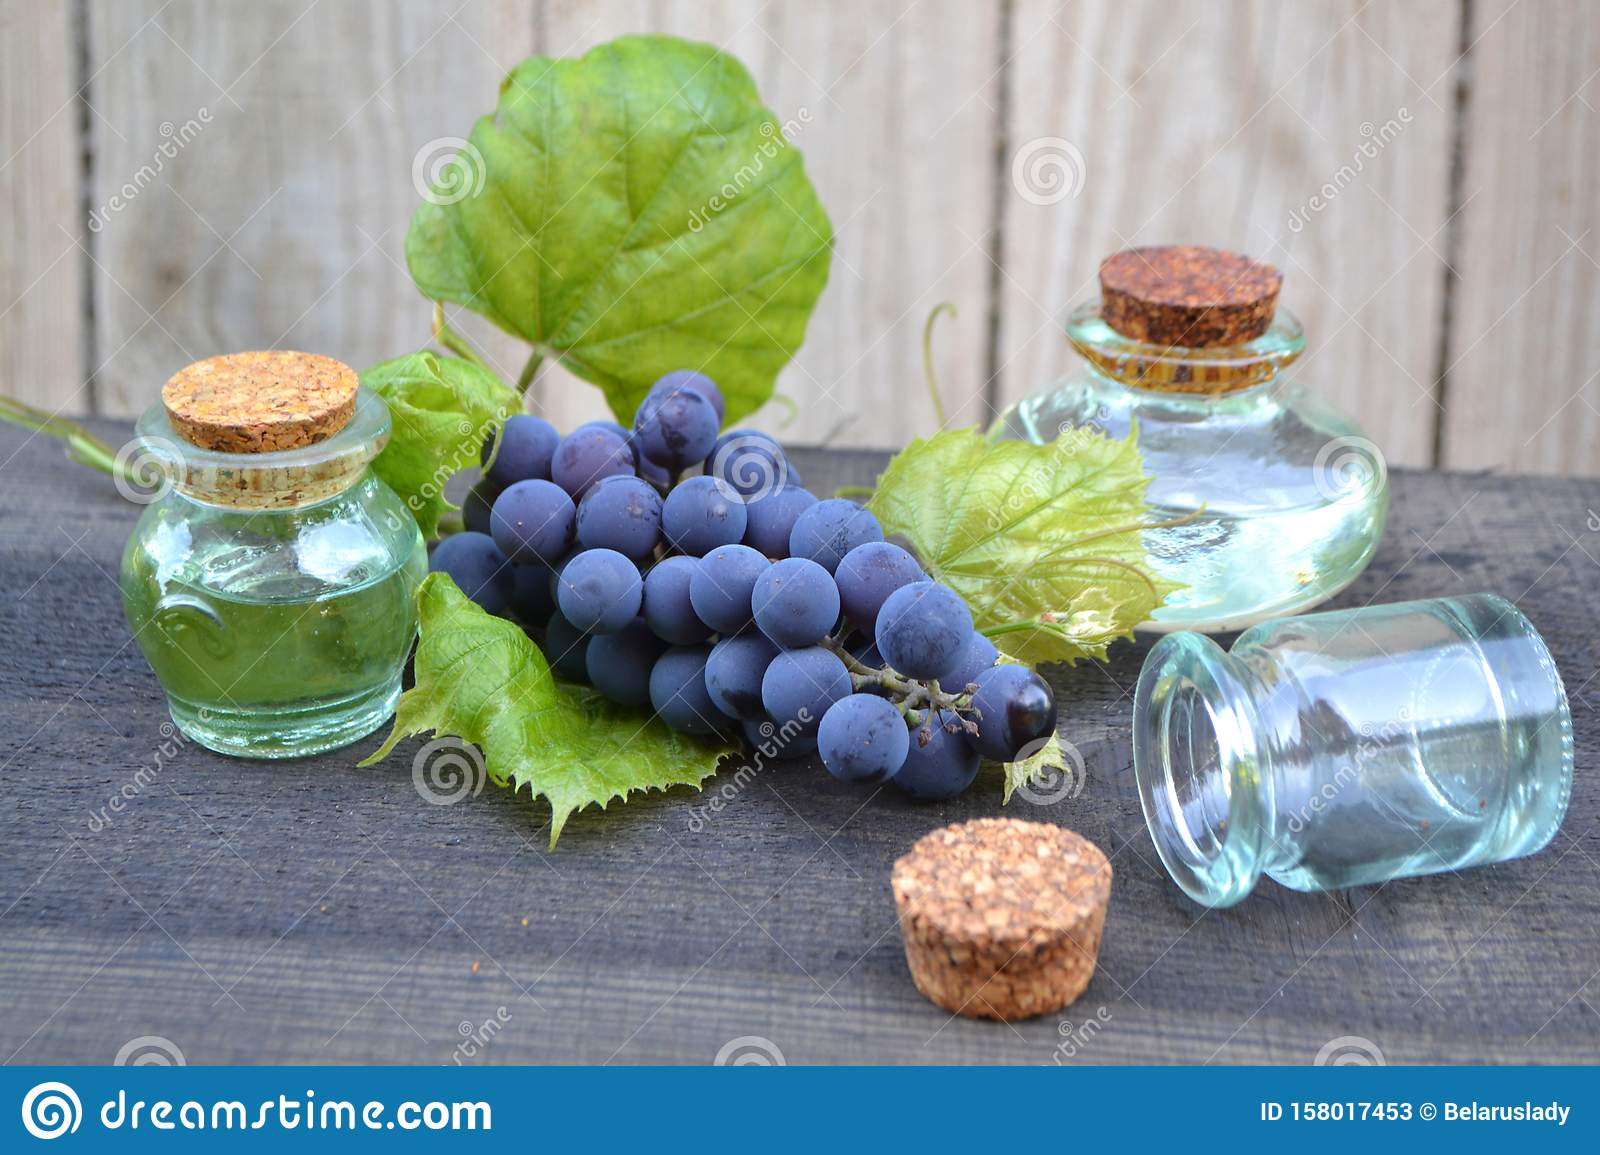 Grapes essential oil in a glass bottle on old rustic wooden boards. Blue grape with green leaves